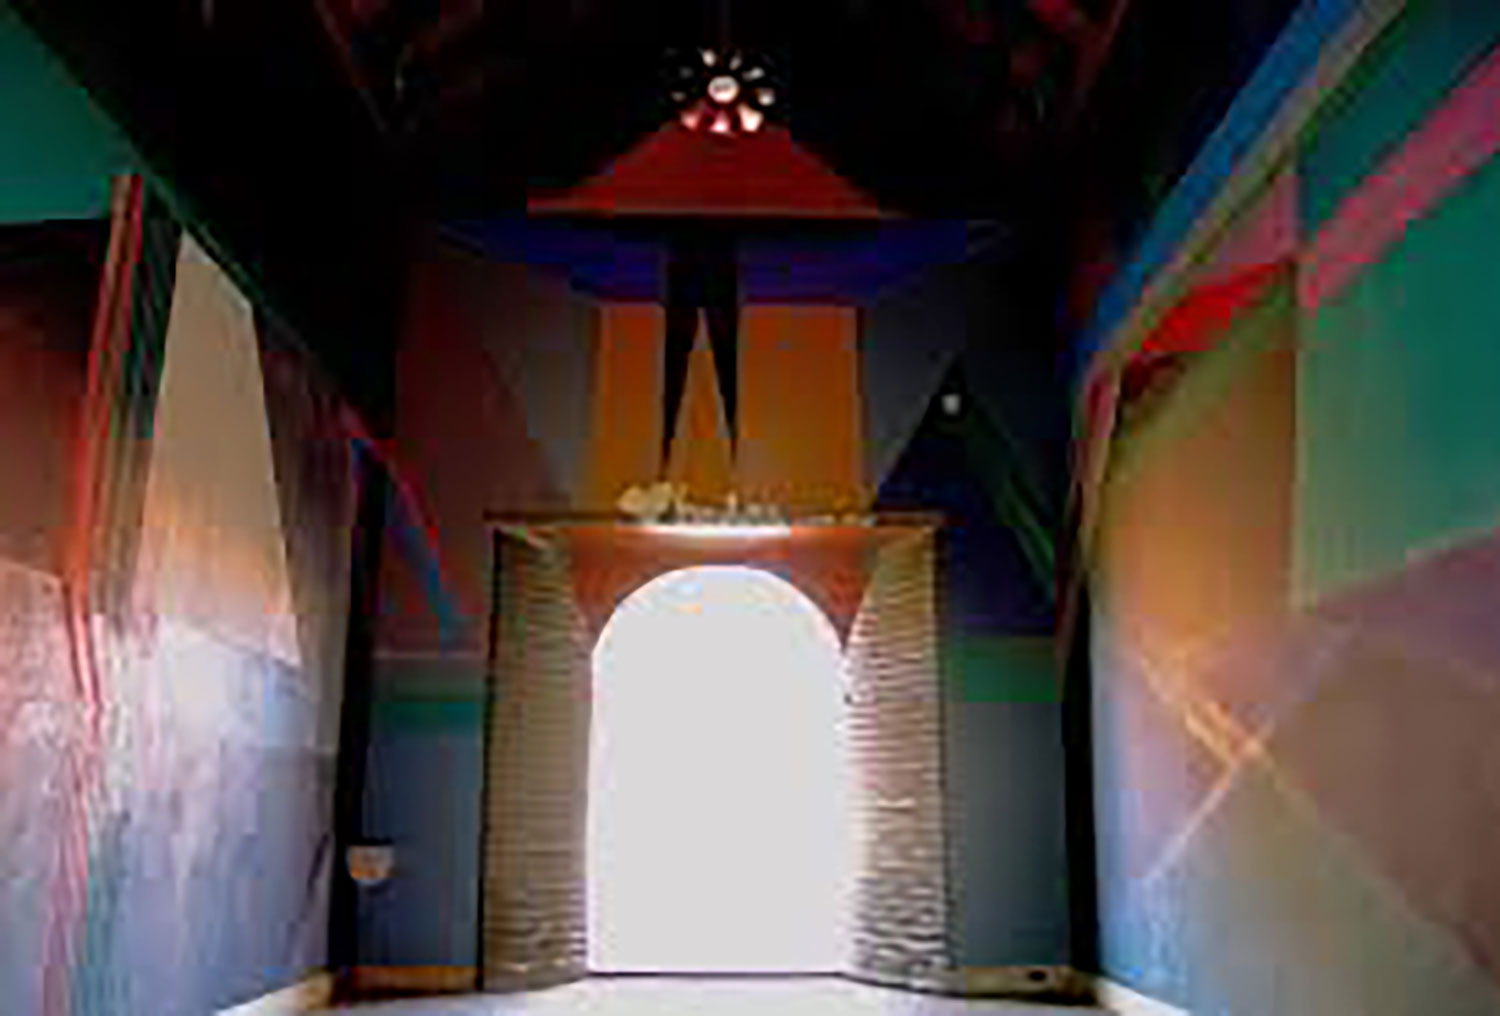 Murals by Federico Silva, inside the Chapel.